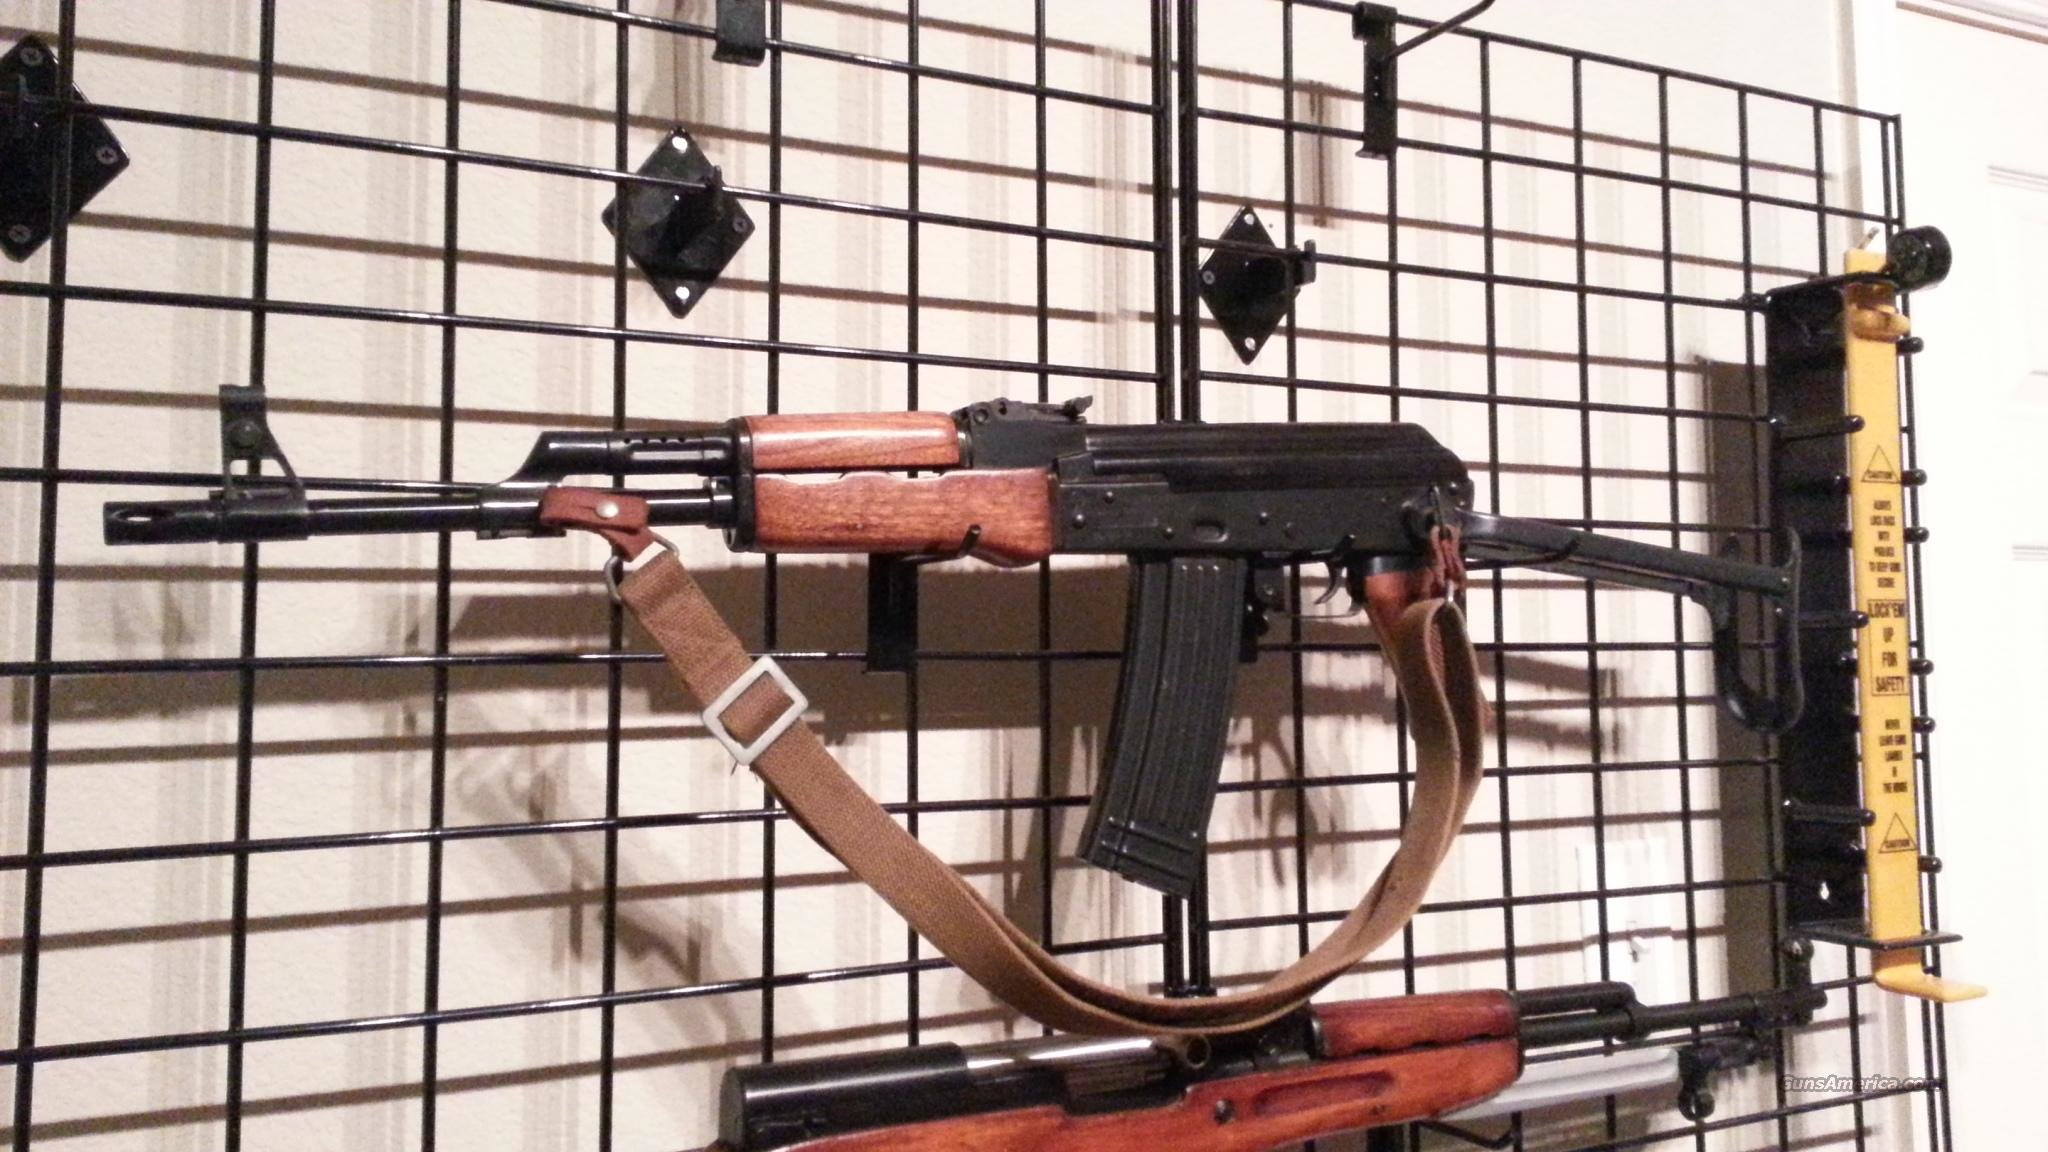 AK47 NORINCO PREBAN 84S UNDERFOLDER  Guns > Rifles > AK-47 Rifles (and copies) > Folding Stock